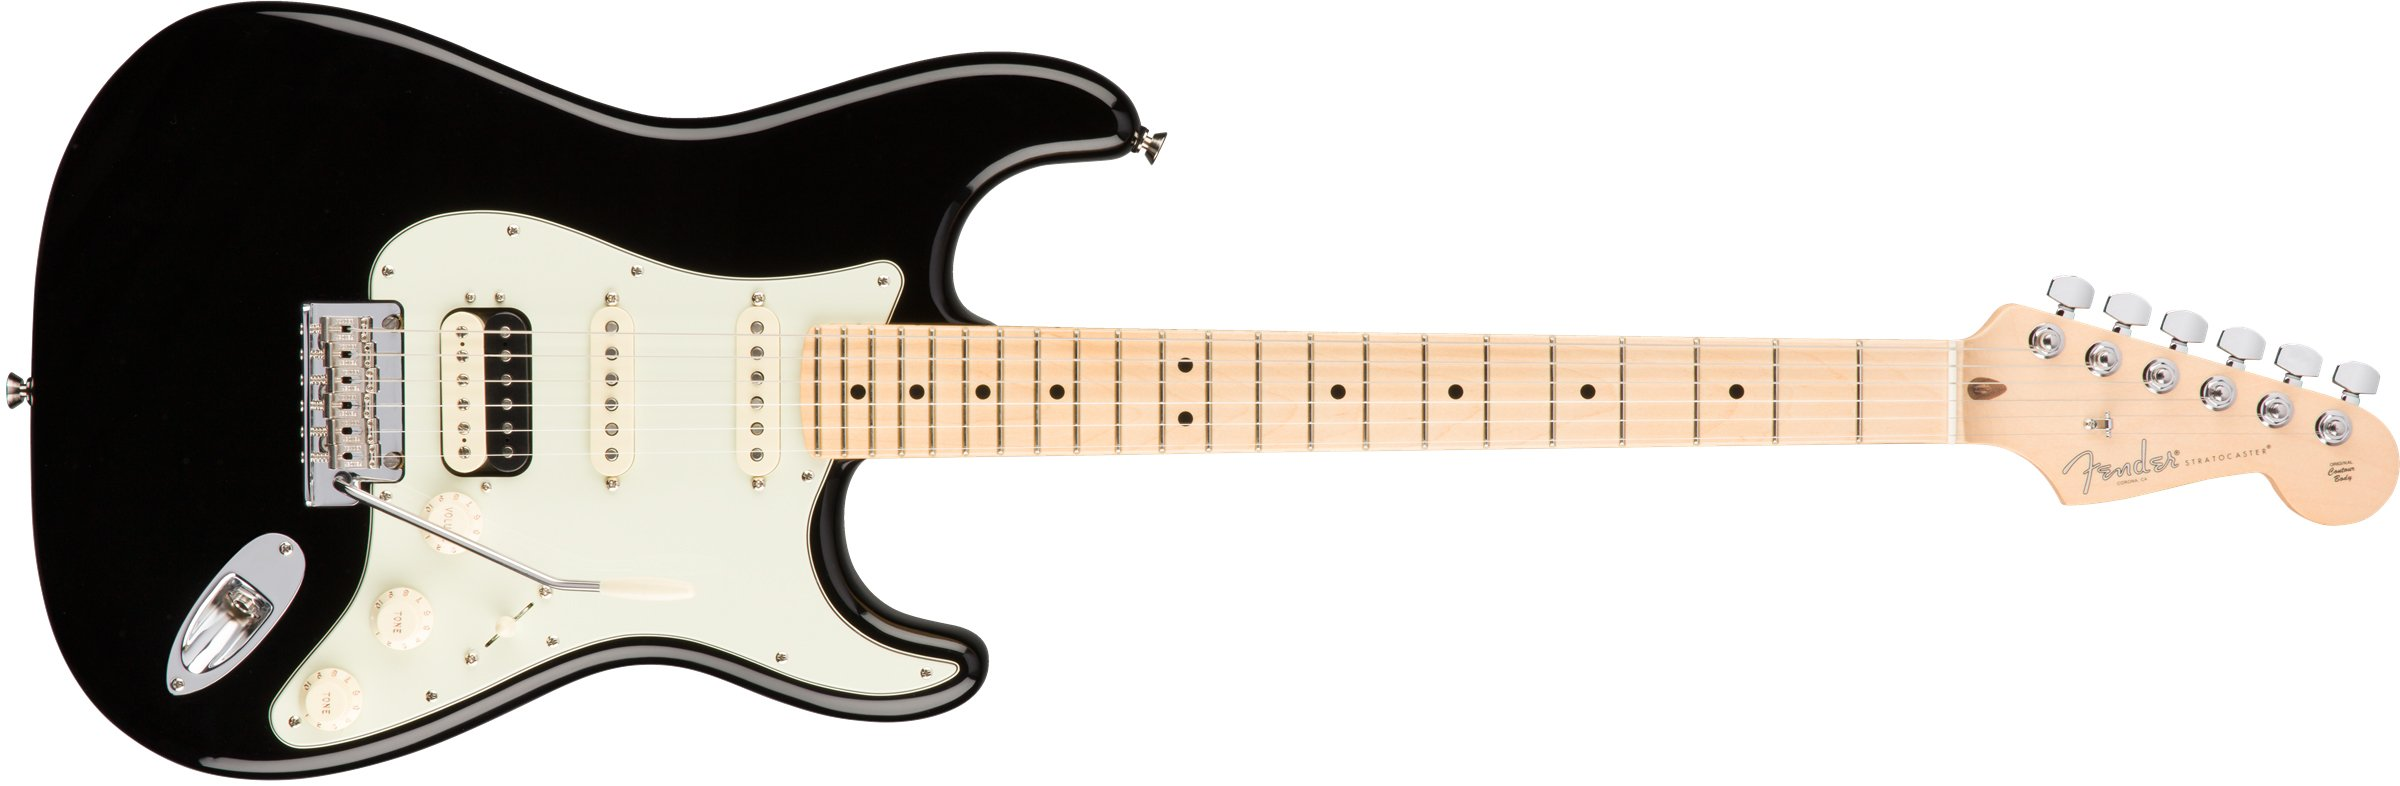 Cheap Fender American Professional HSS Shawbucker Stratocaster - Black with Maple Fingerboard Black Friday & Cyber Monday 2019